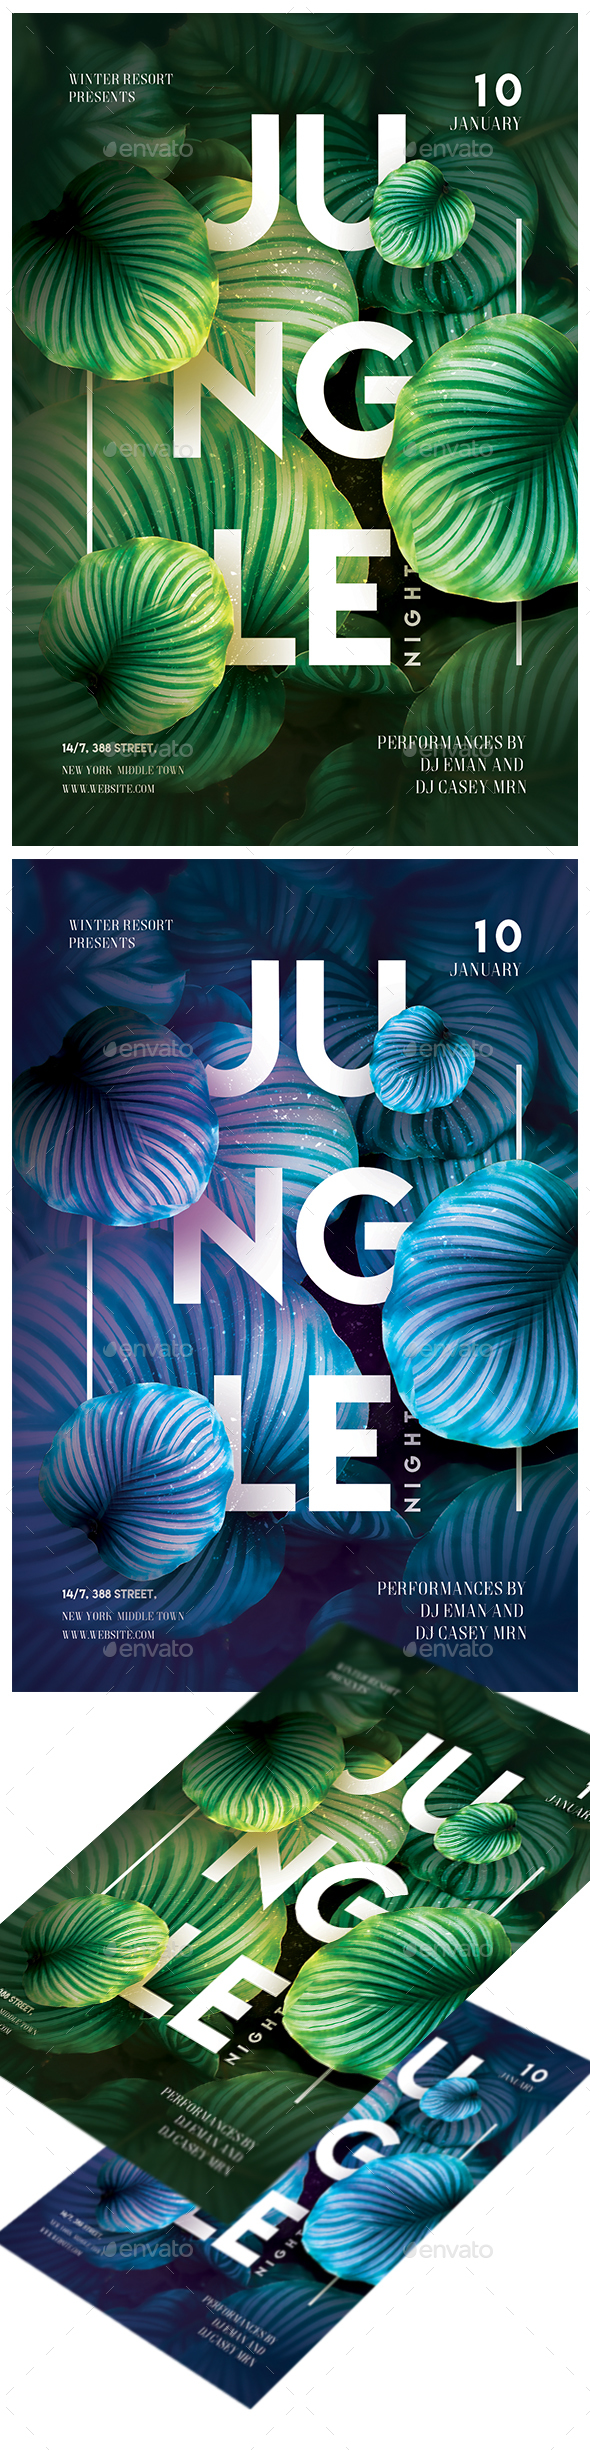 Jungle NIght Party Flyer - Clubs & Parties Events